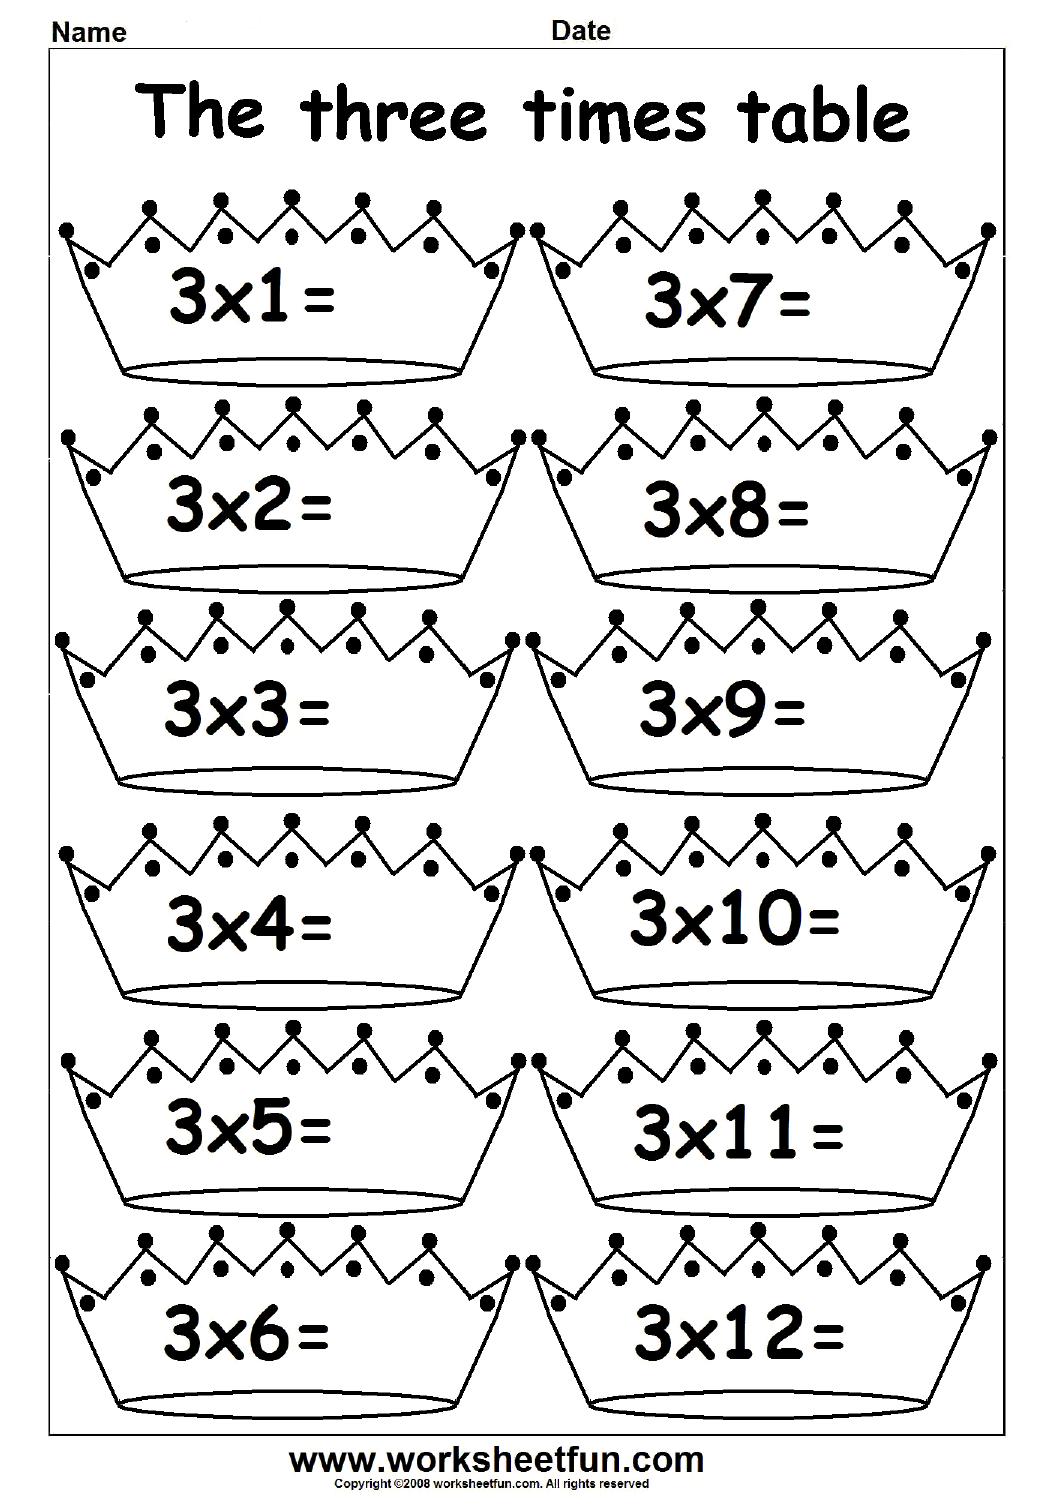 Pin On Printable Worksheets